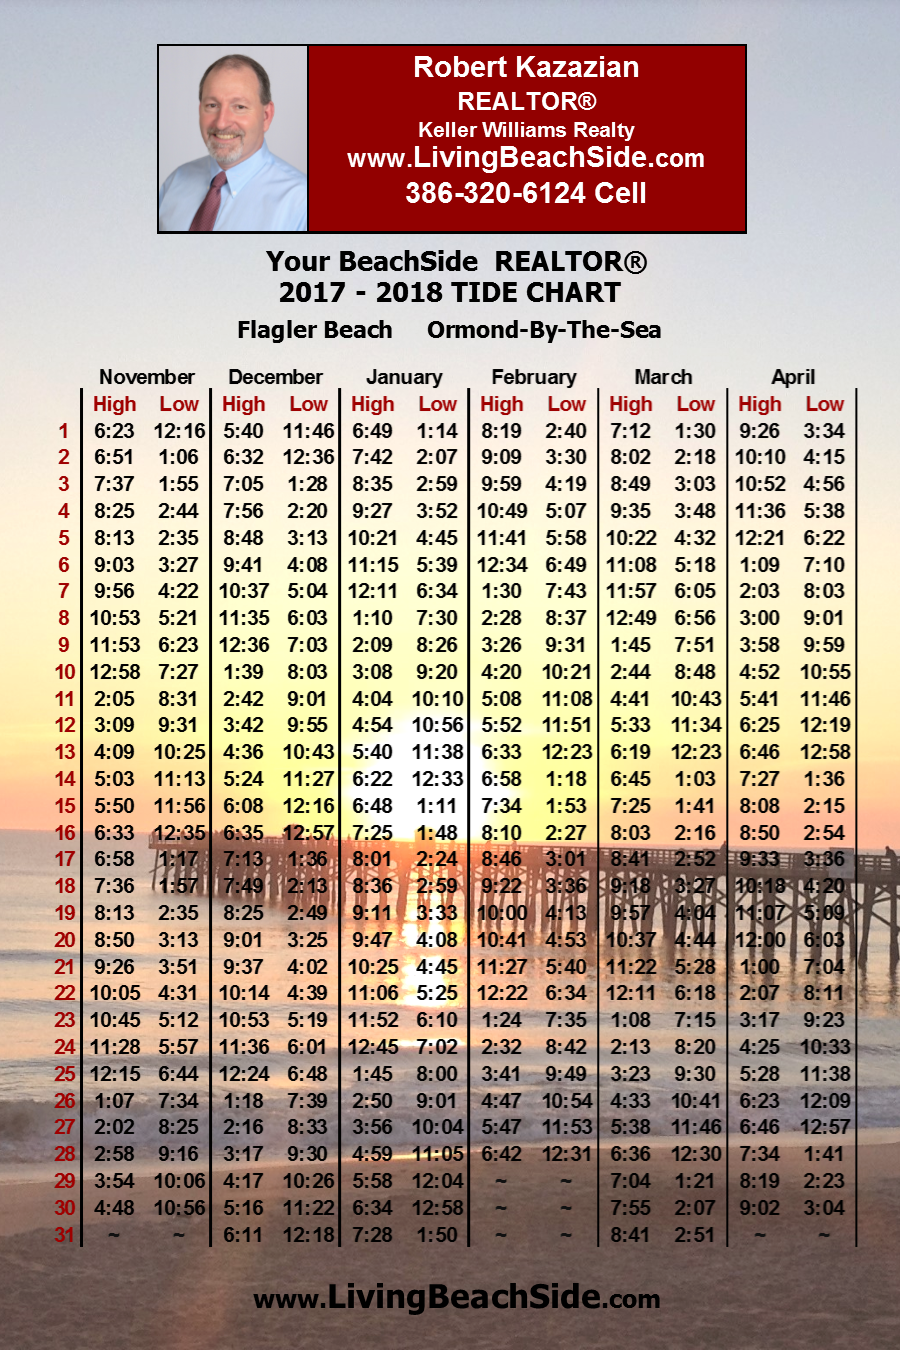 Flagler Beach Ormond Beach 2018 Tide Chart